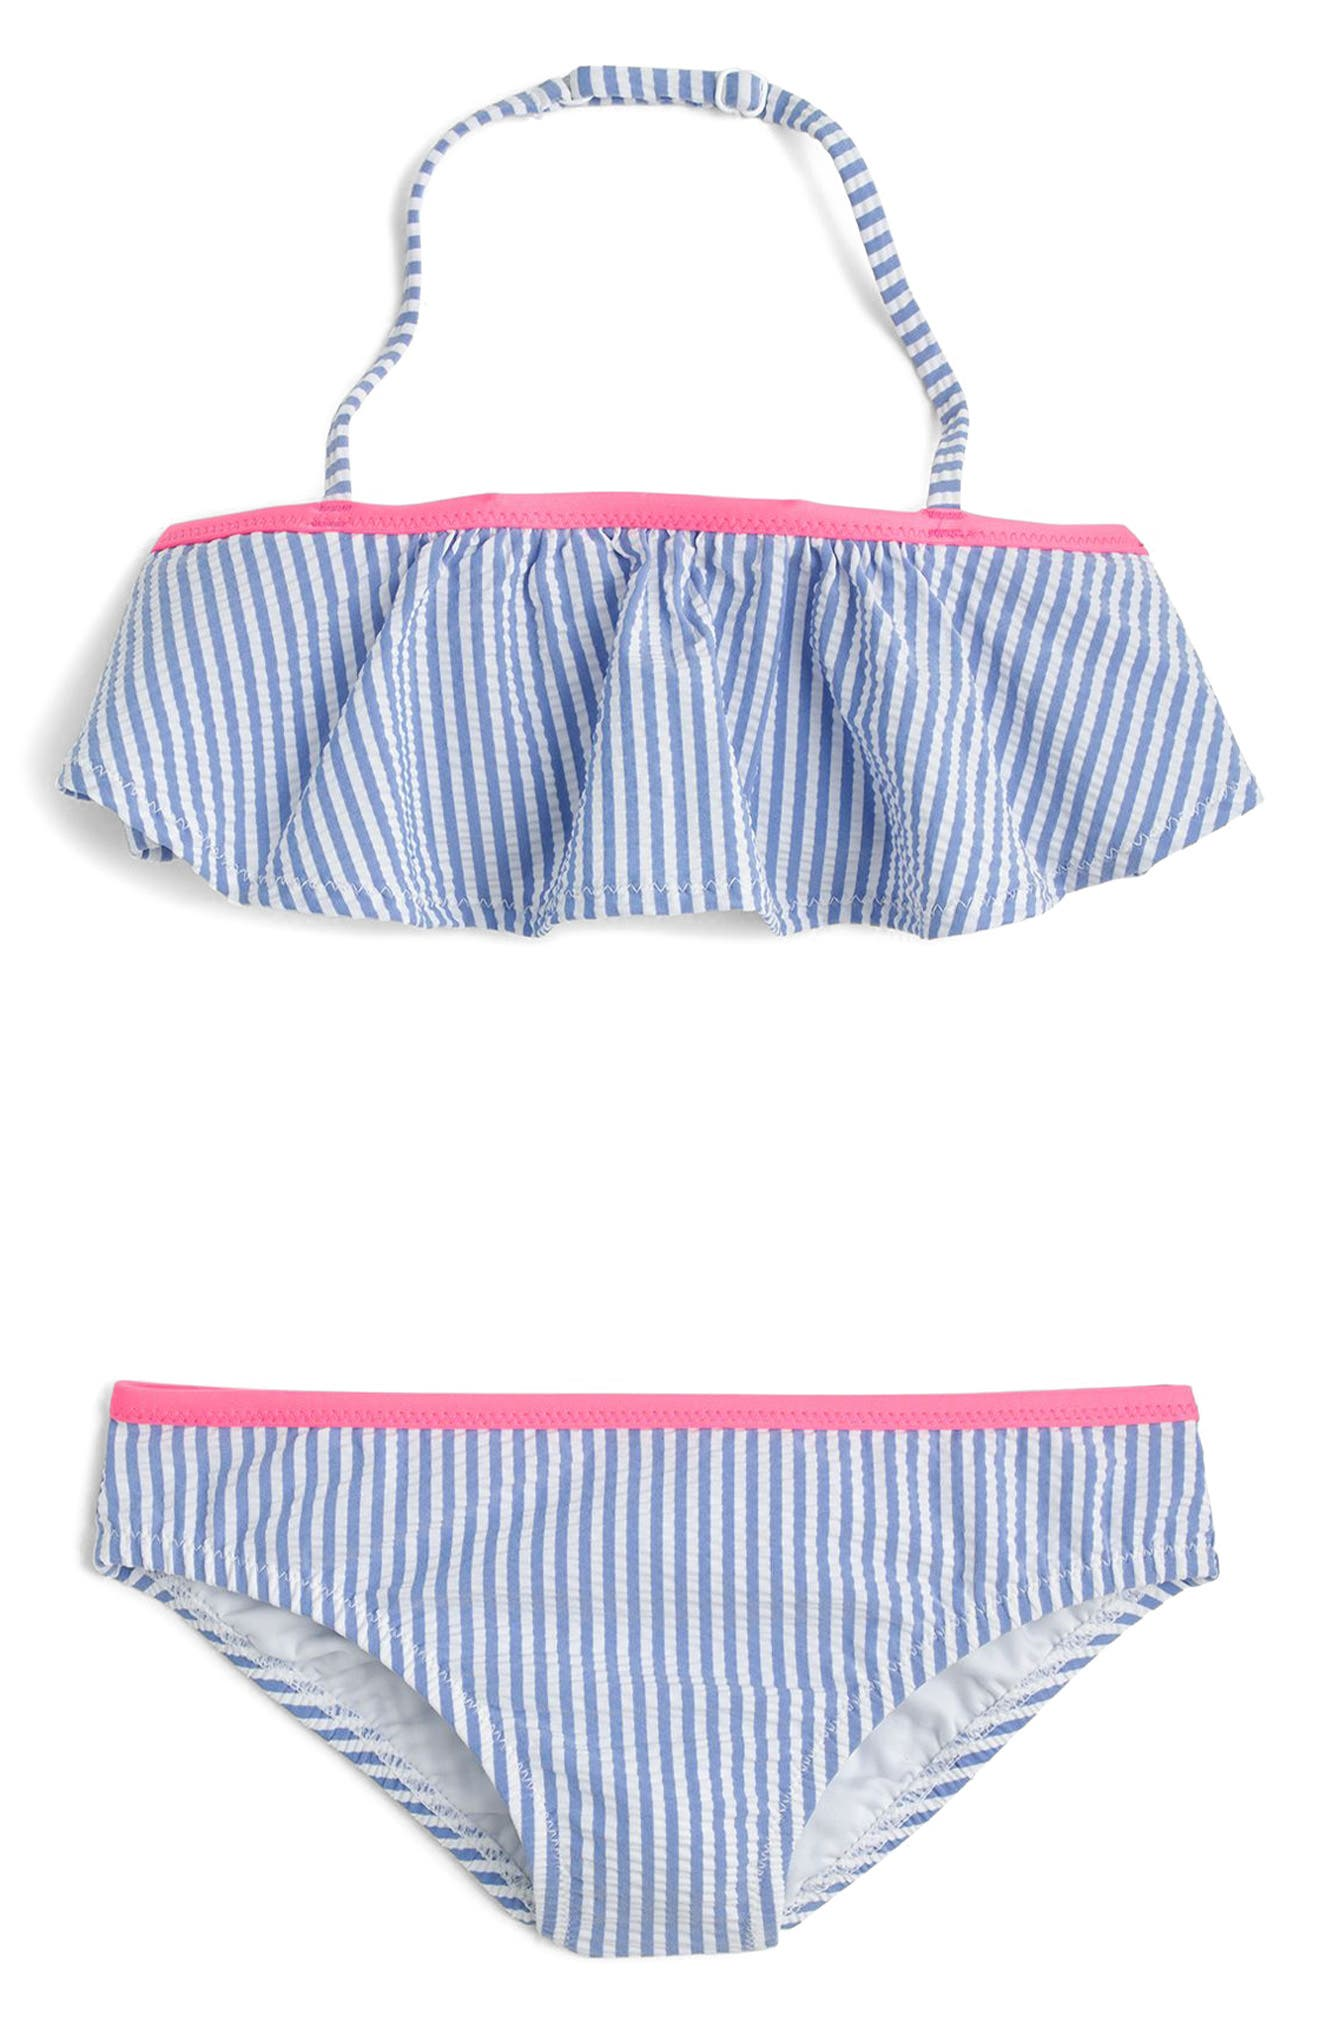 Ruffled Seersucker Two-Piece Bikini Swimsuit,                         Main,                         color, 400